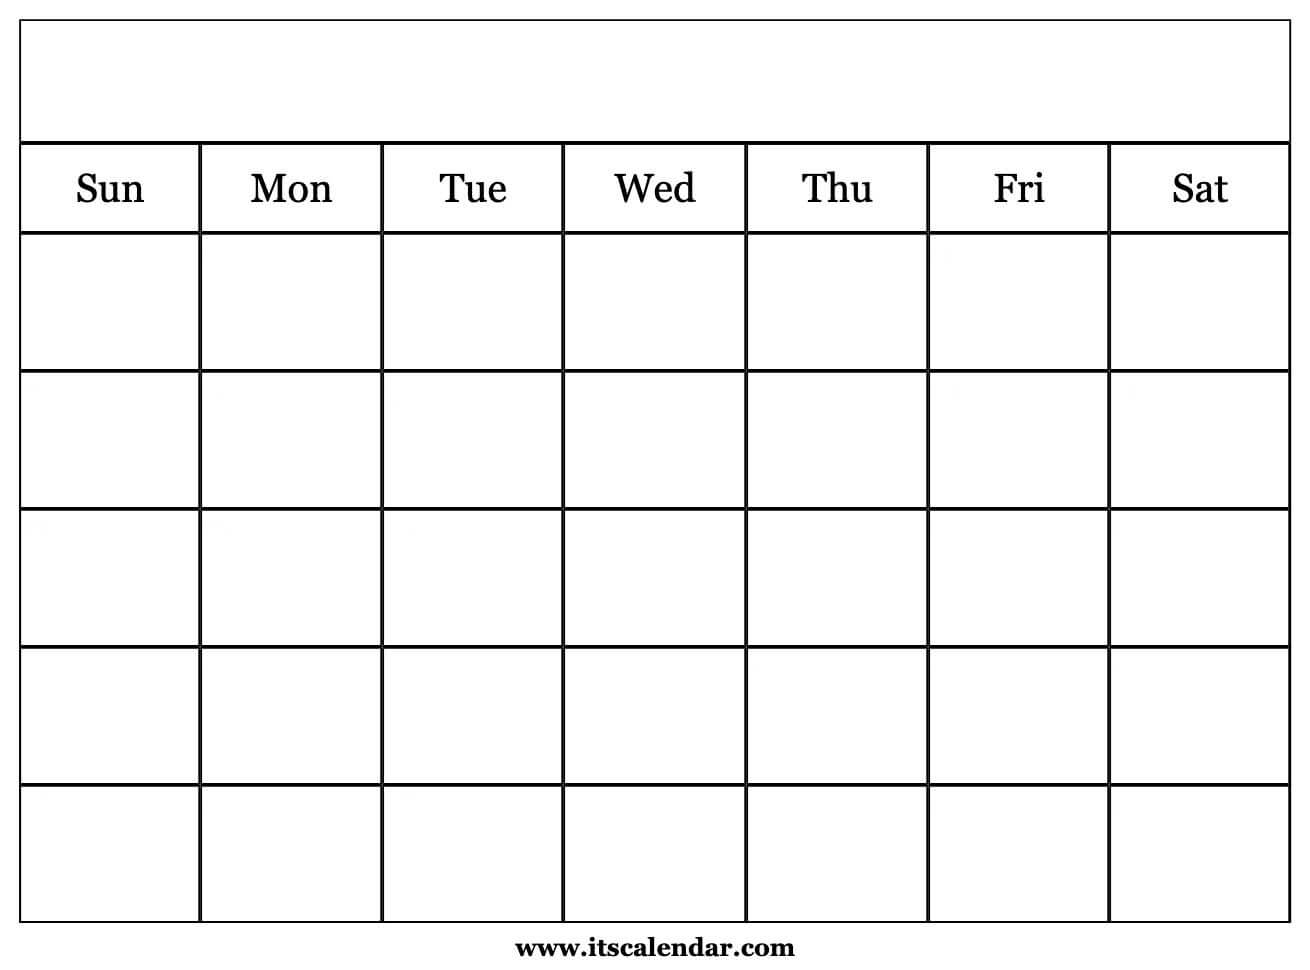 Printable Blank Calendar intended for Printable Monthly Calendar Without Download